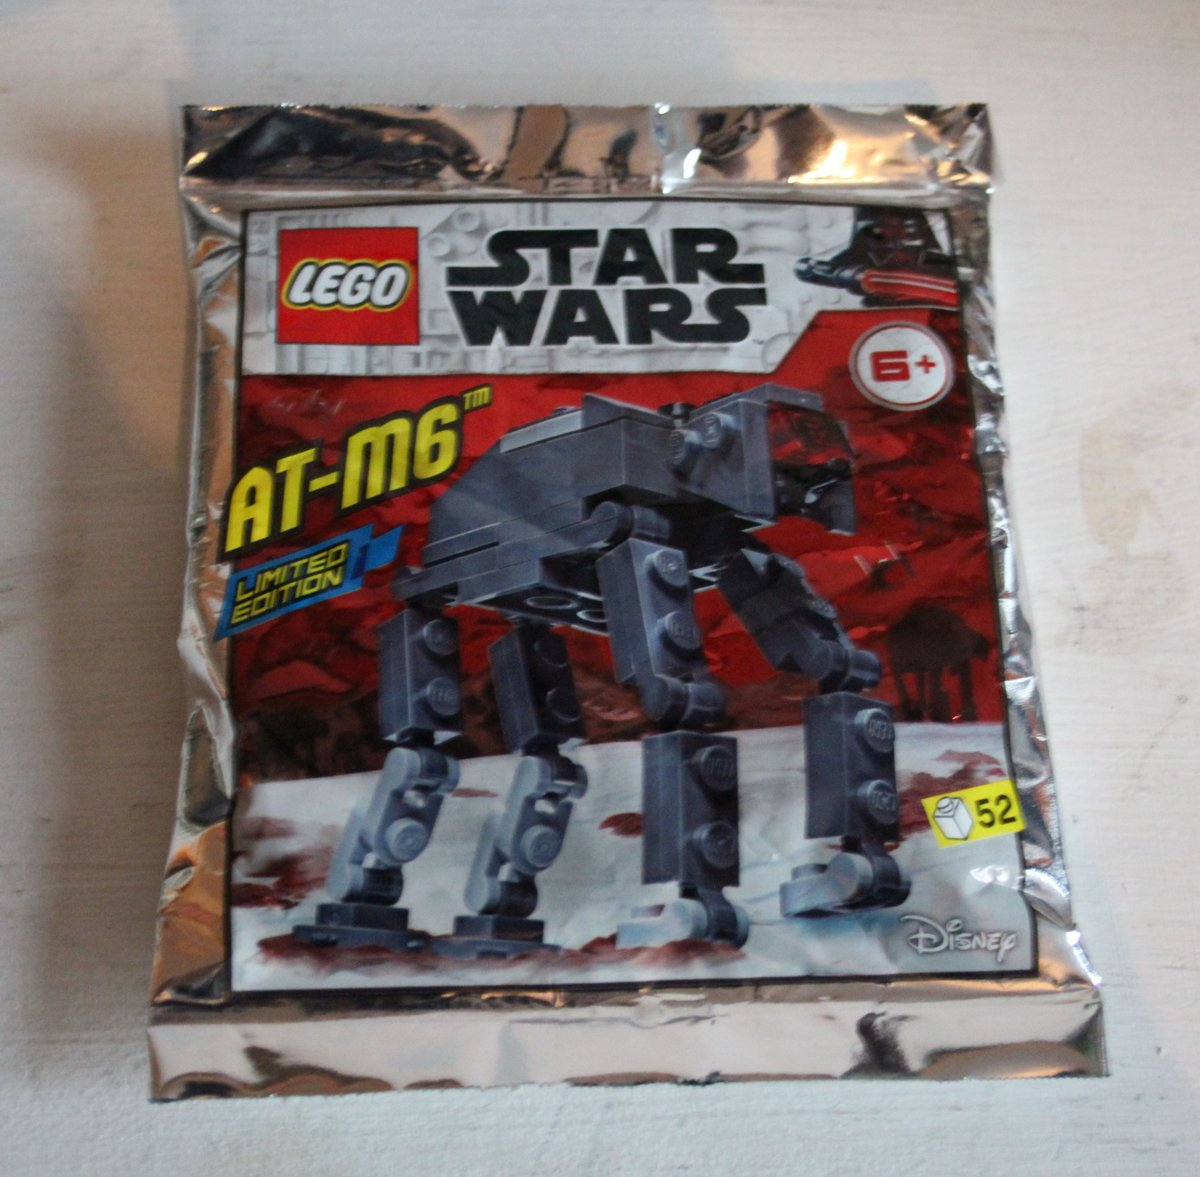 Lego Star Wars AT-M6 (polybag)